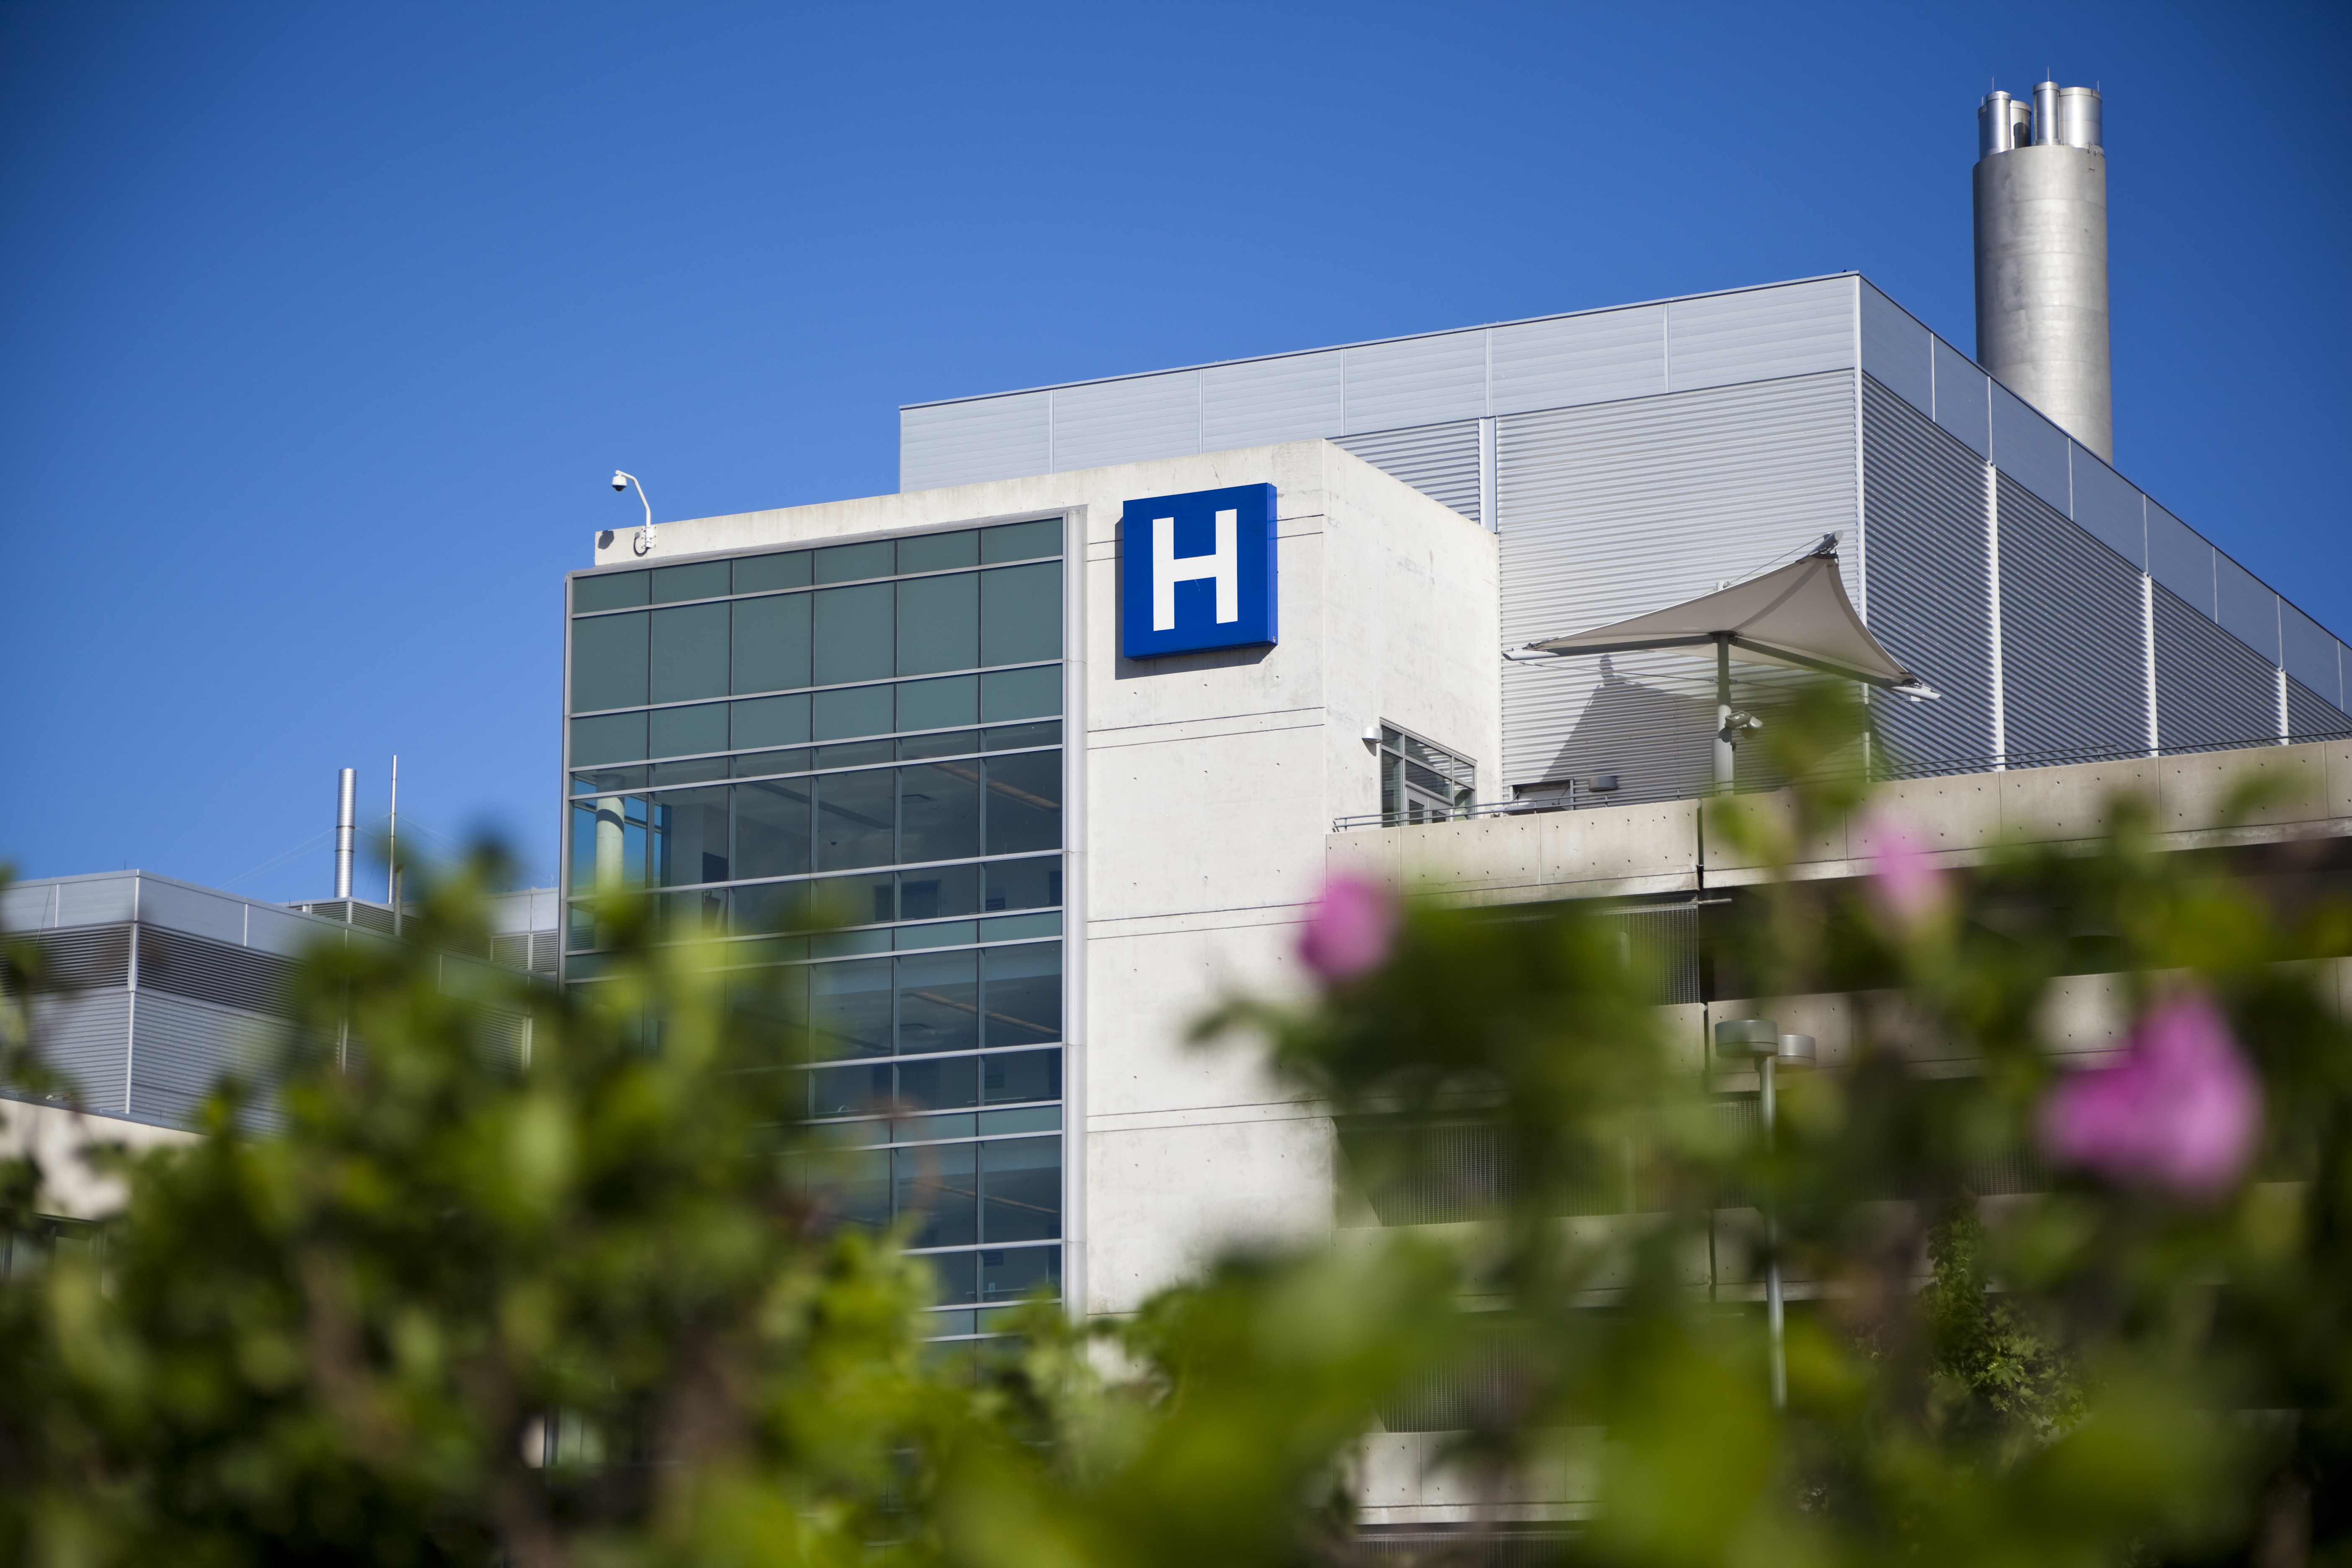 Photo of a hospital linking to an article about Court Affirms Public Hospitals Must Comply with Reproductive Privacy Act